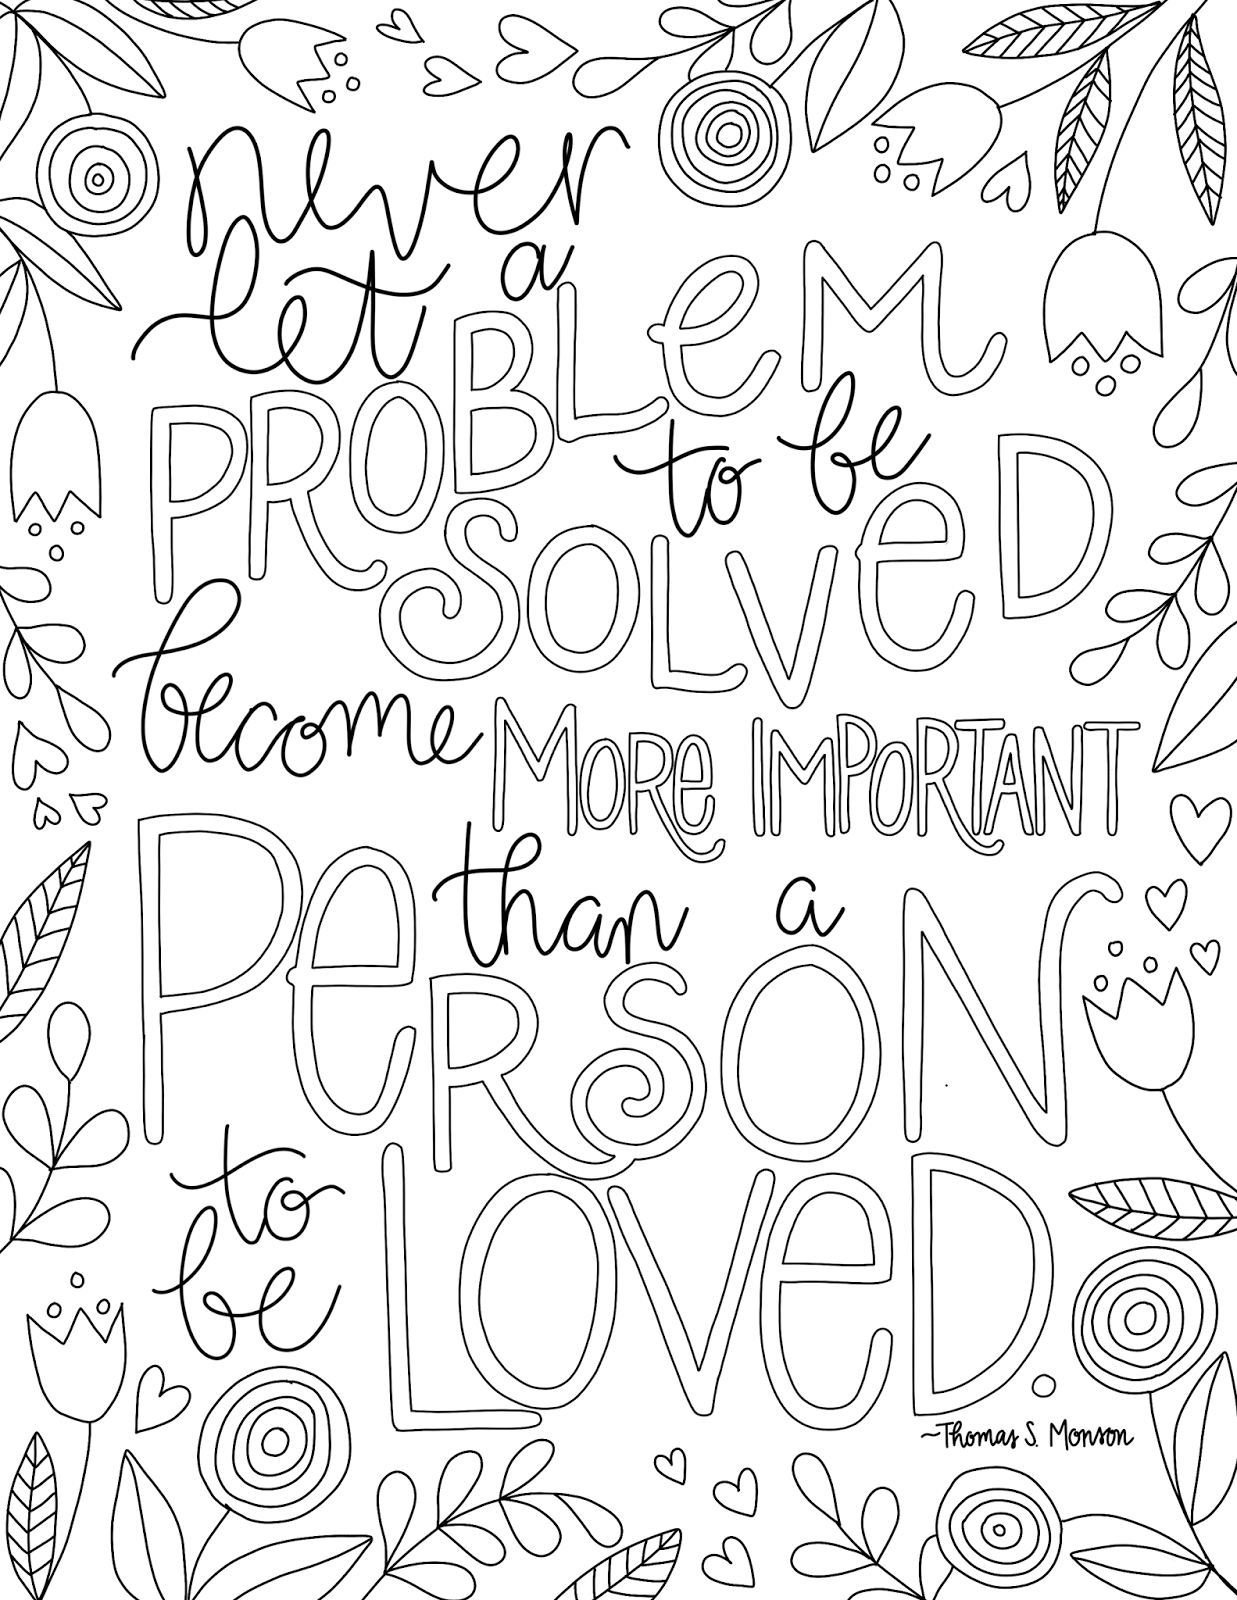 just what i {squeeze} in: Problems vs People - free LDS coloring ...